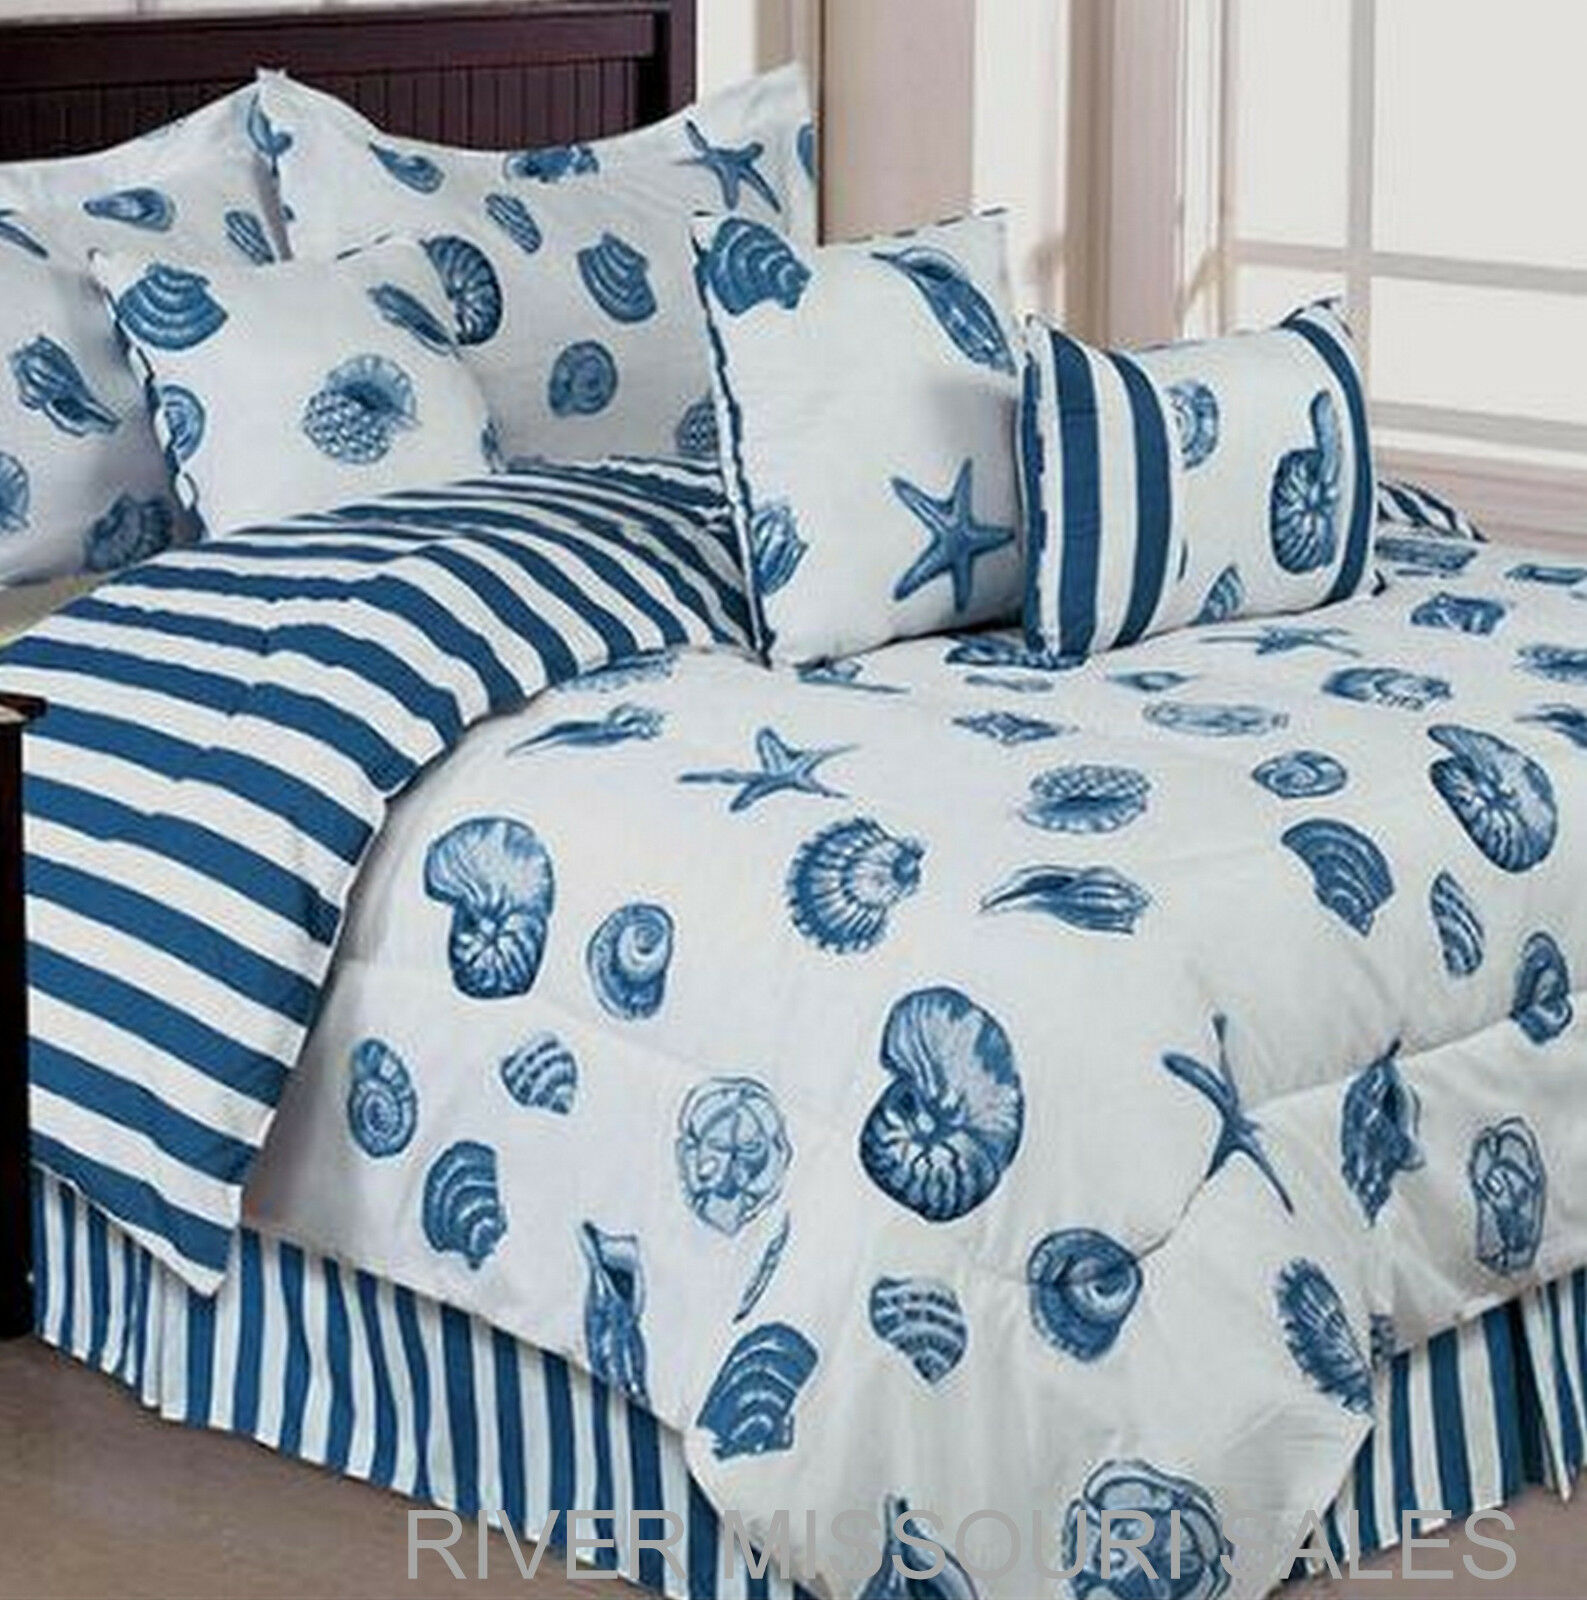 Nautical Ocean Themed Seashell 7 Piece Bed In Bag Comforter Set,Choice Sizes-NEW